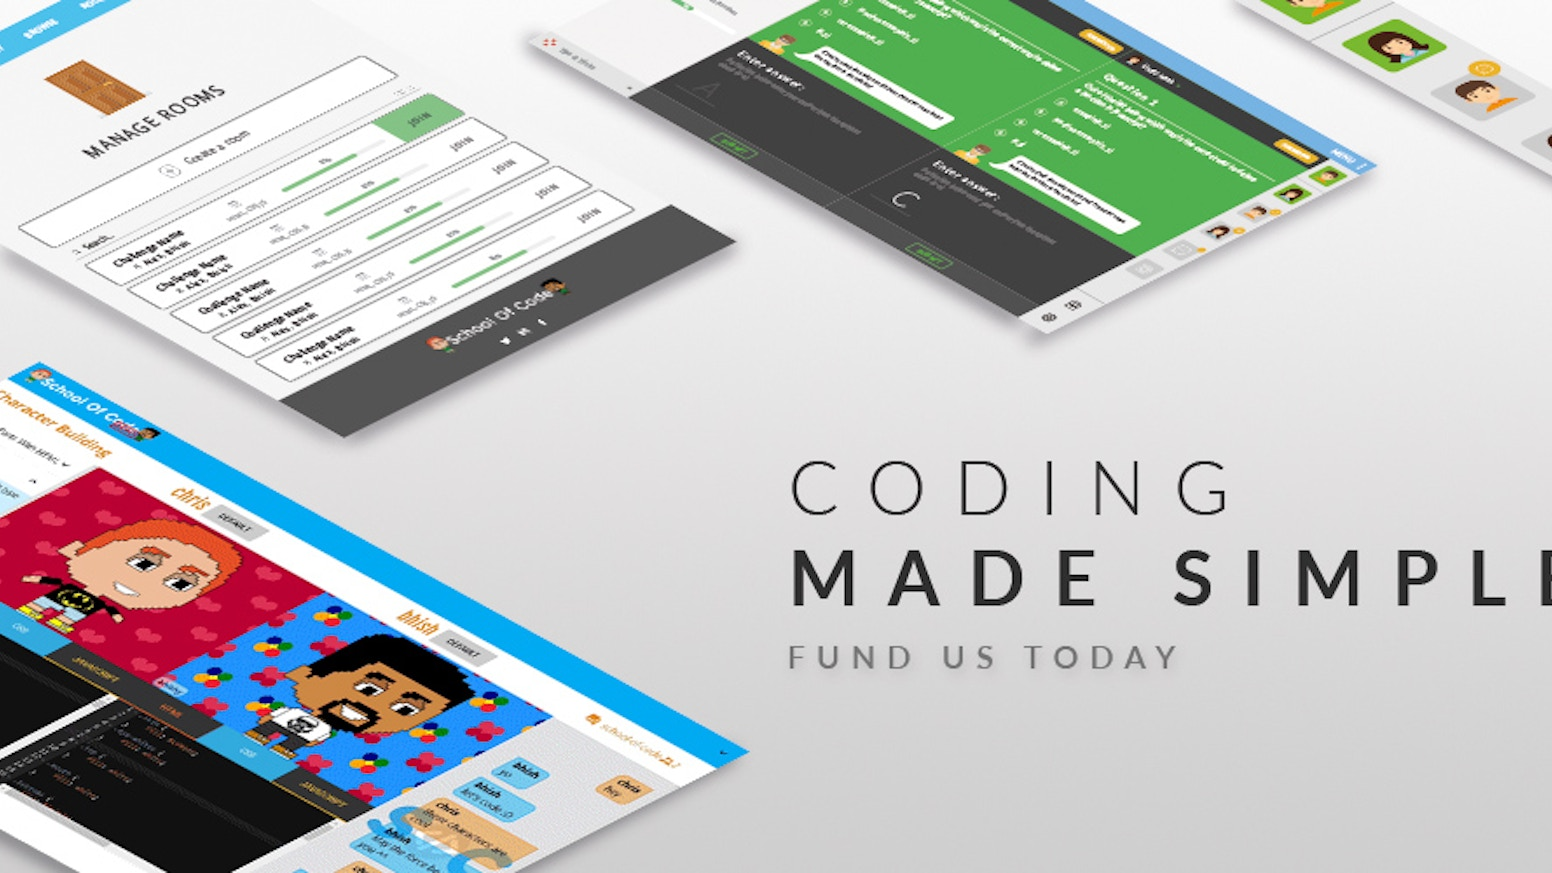 The new way of learning to code! School of Code presents the world's first multiplayer coding platform. Team up and have fun coding!